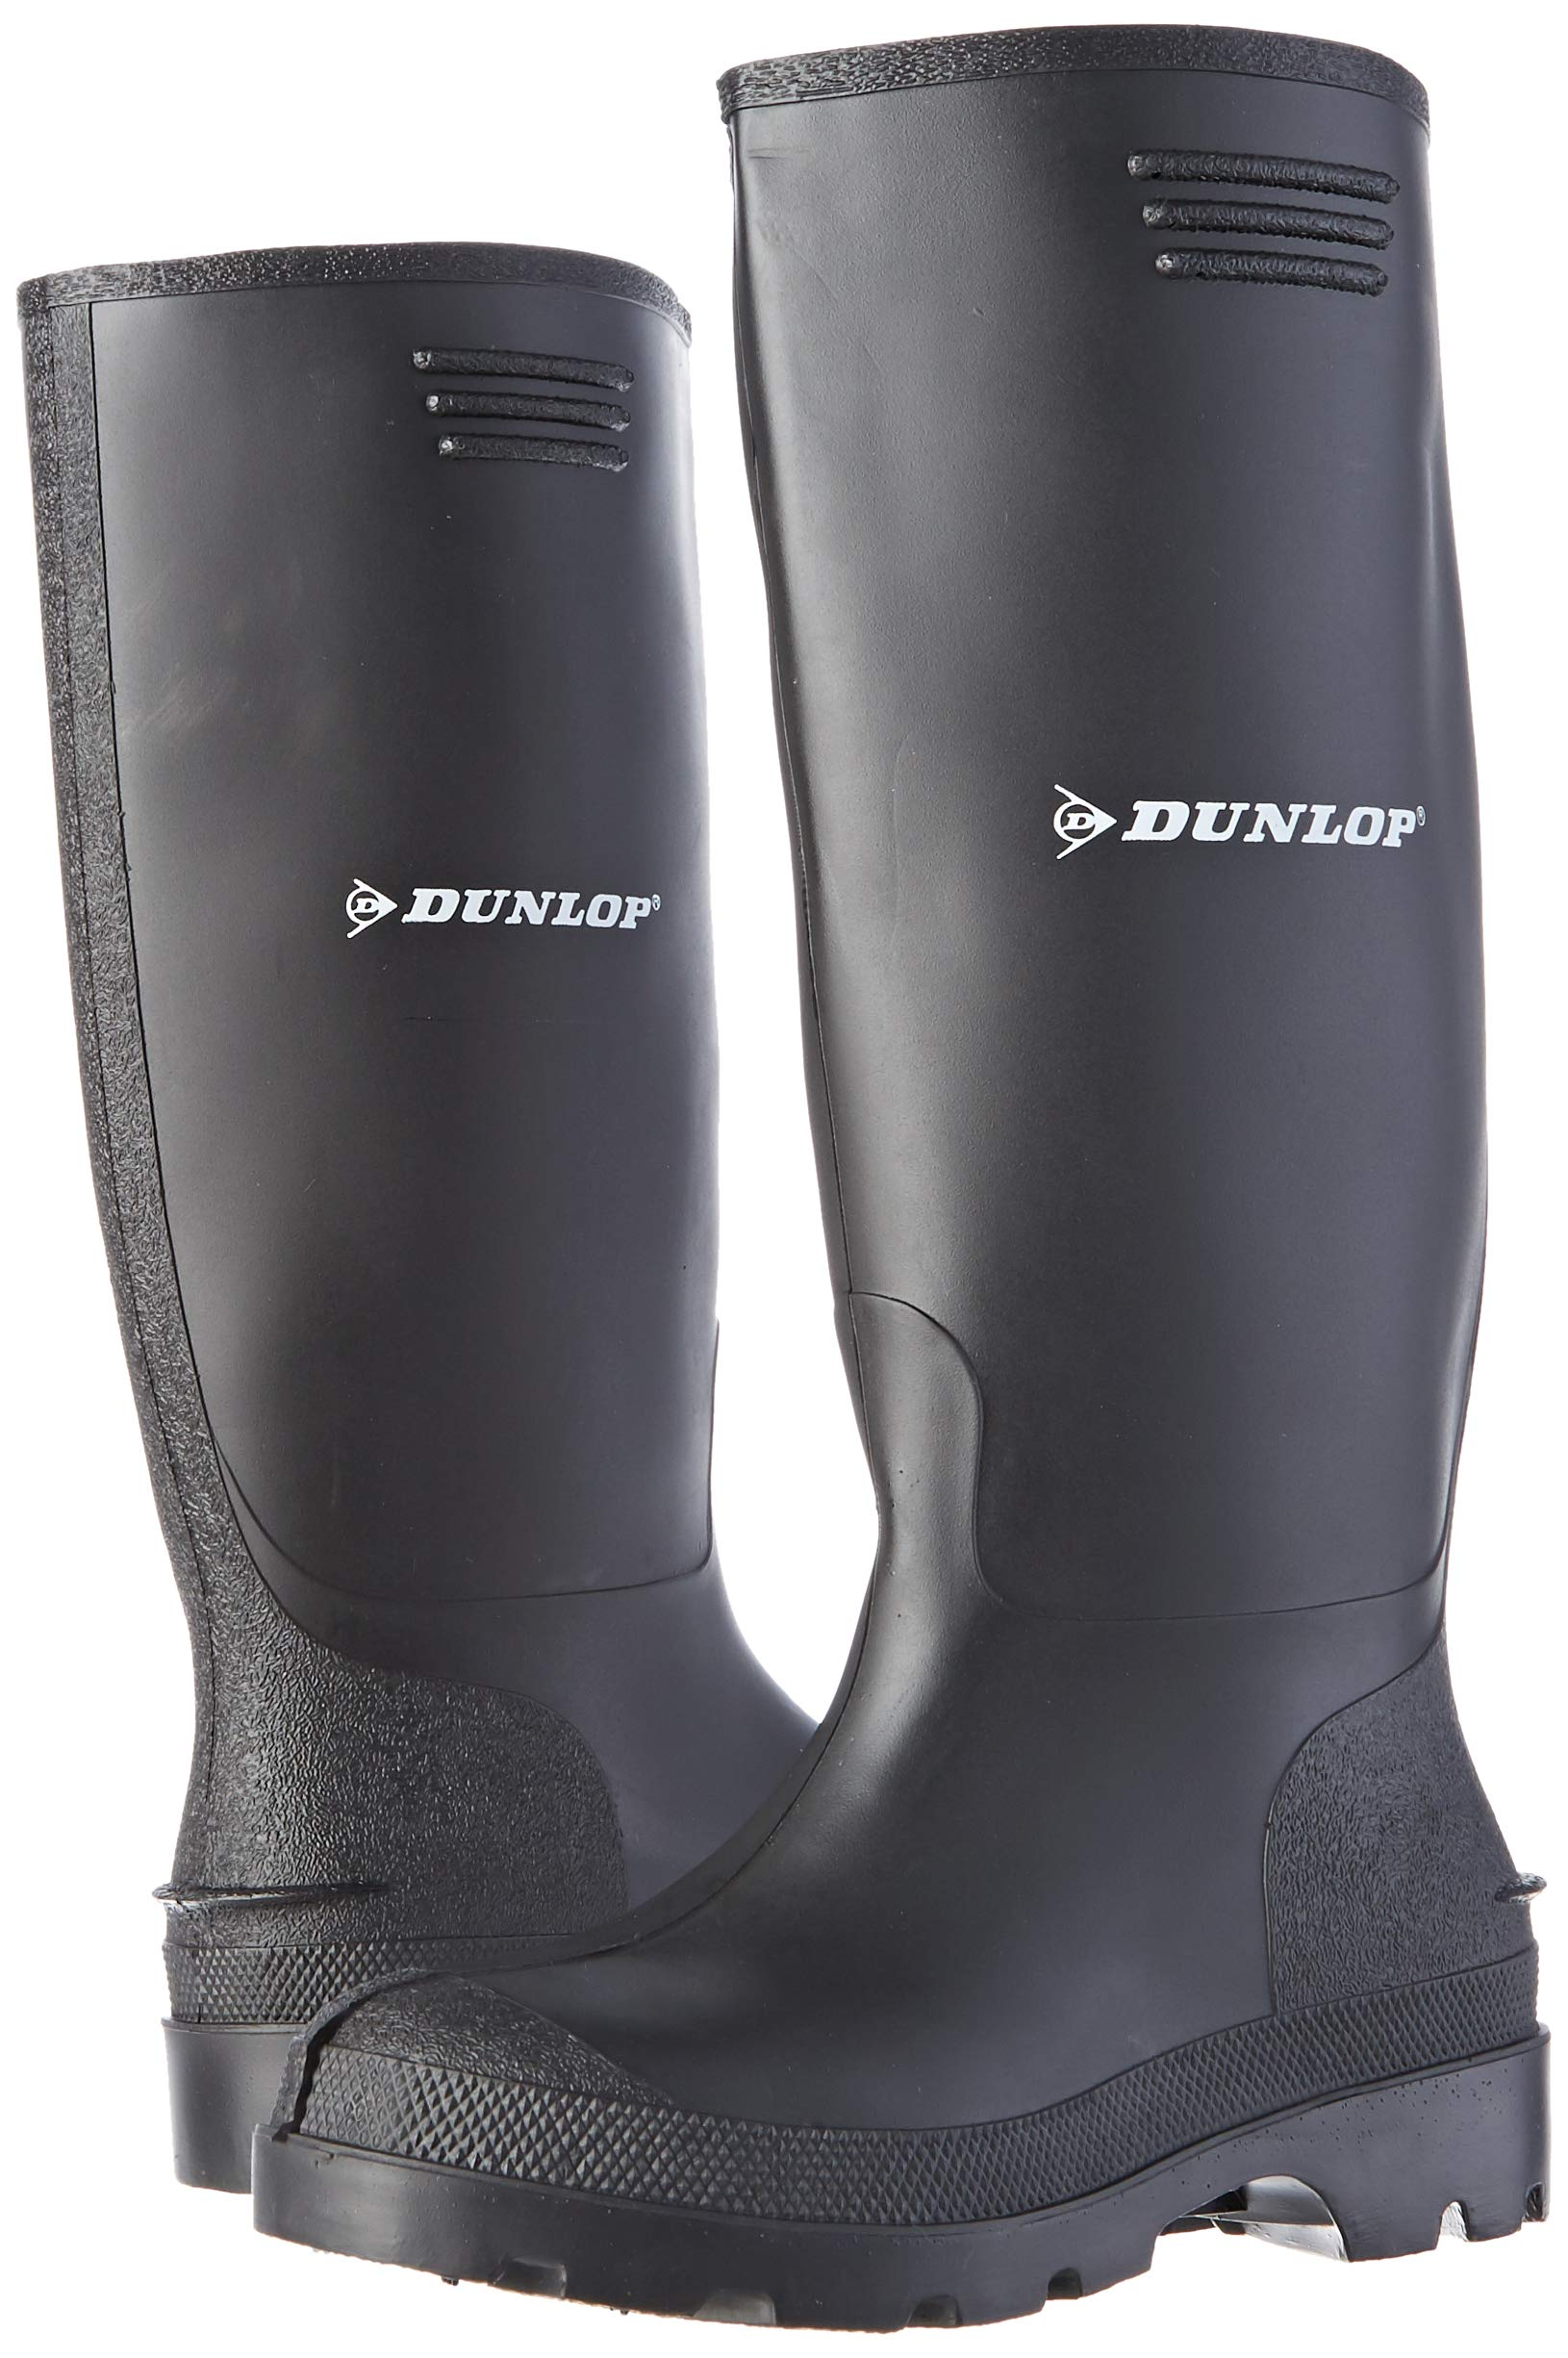 Dunlop Unisex Adult Pricemastor Wellington Boots 5